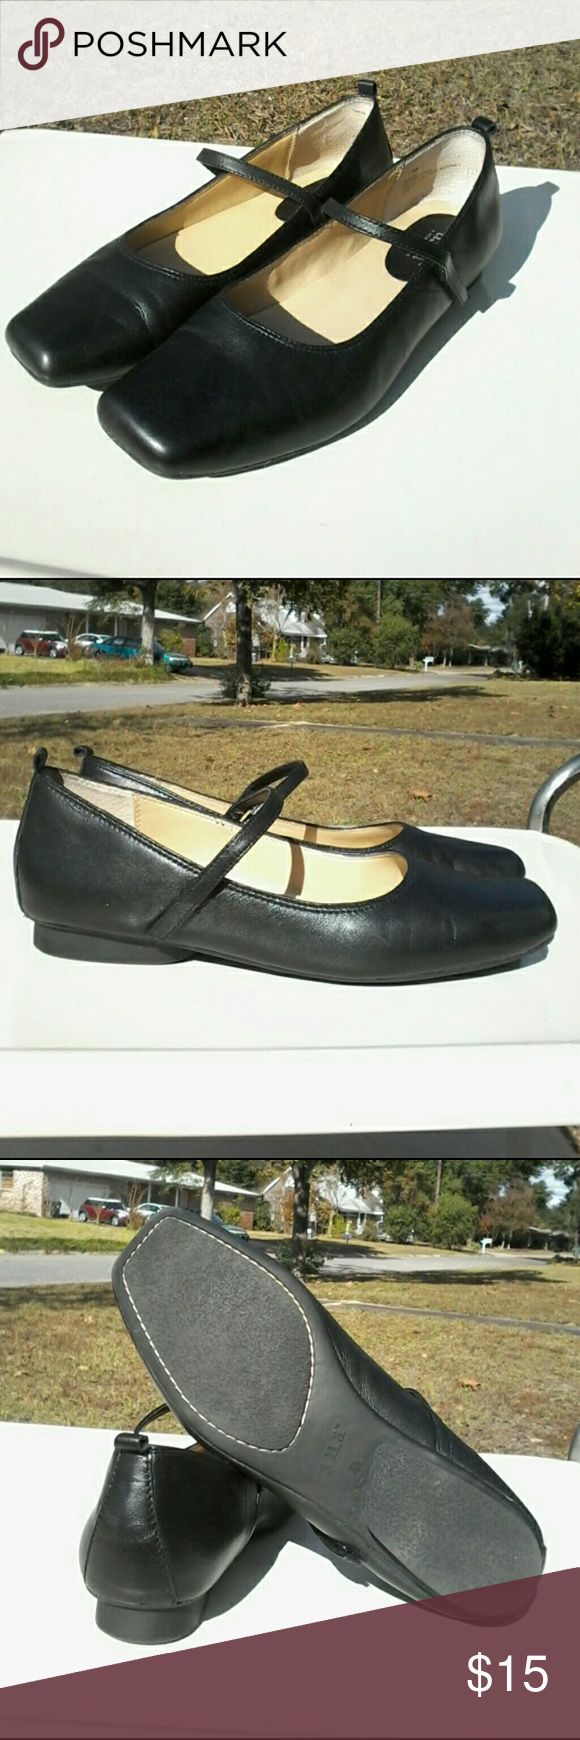 a.n.a  Mary Jane style Leather Flats  velcro strap Excellent preowned condition for a in a black leather flats Mary Jane style with velcro straps in size 7.5 m a.n.a Shoes Flats & Loafers